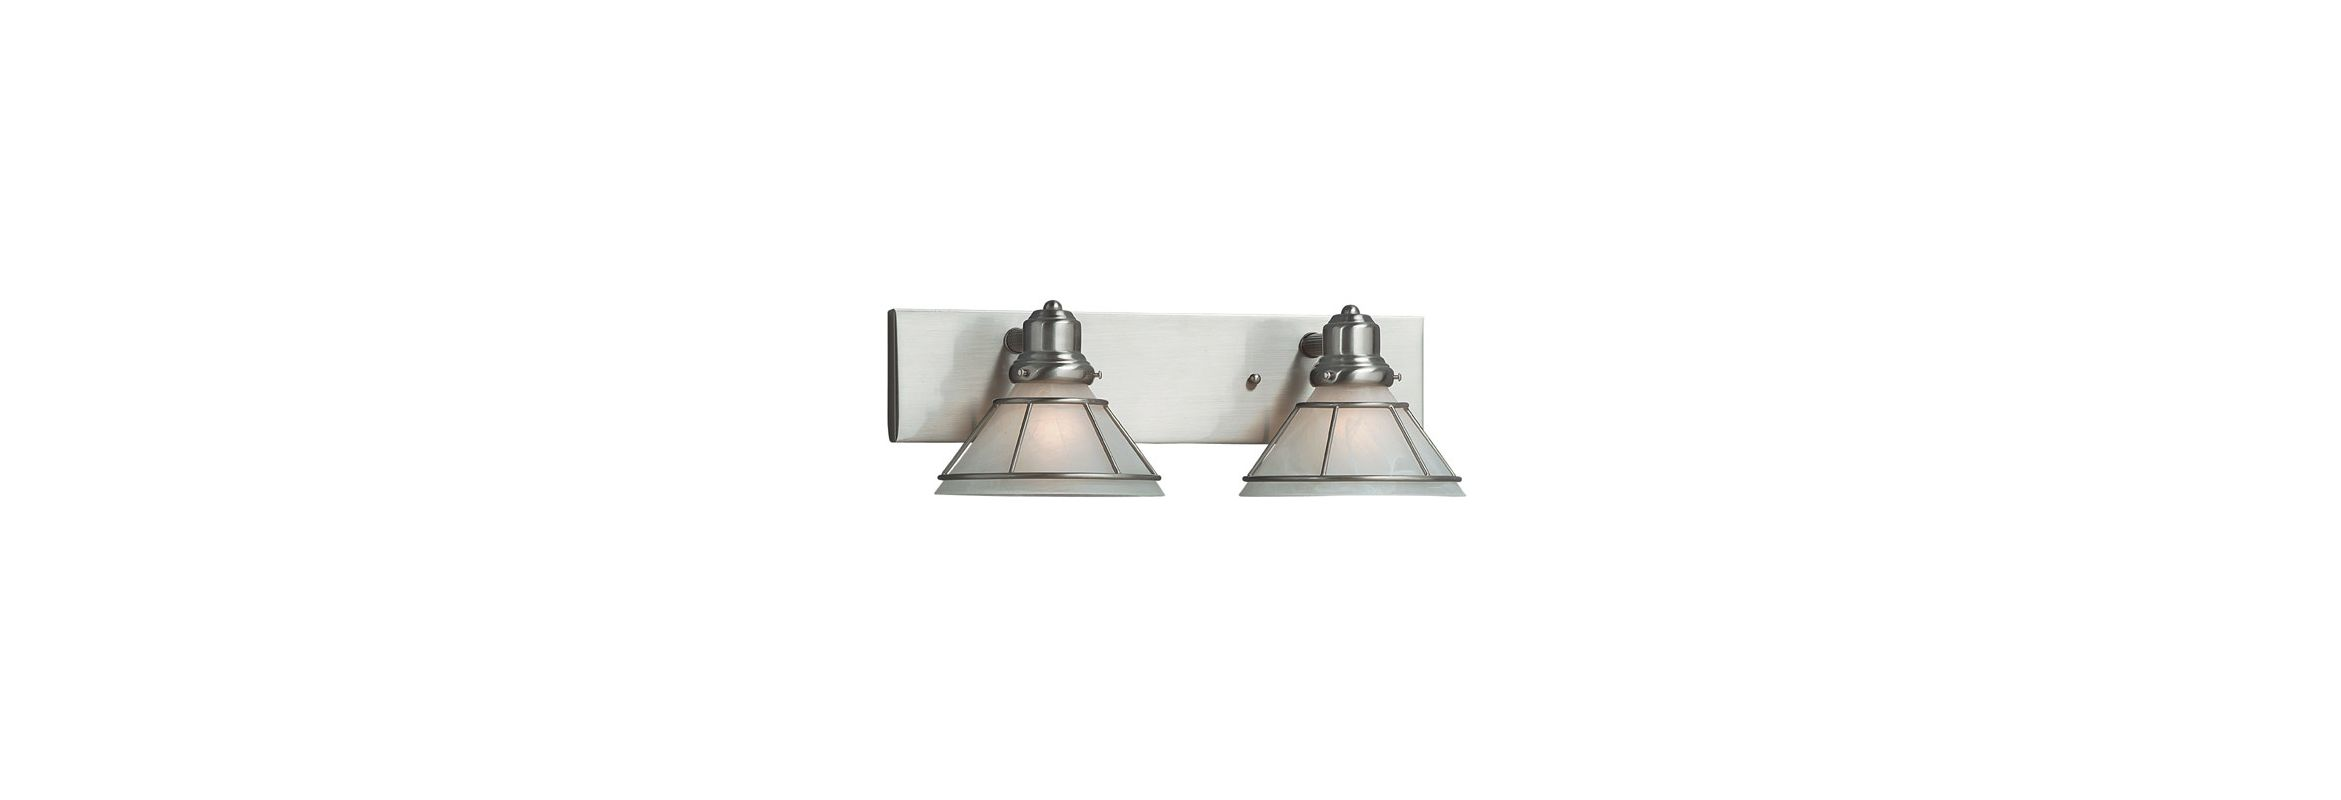 Dolan Designs 632 Bathroom Vanity Light Satin Nickel Indoor Lighting Sale $129.00 ITEM: bci92076 ID#:632-09 UPC: 765641632095 :